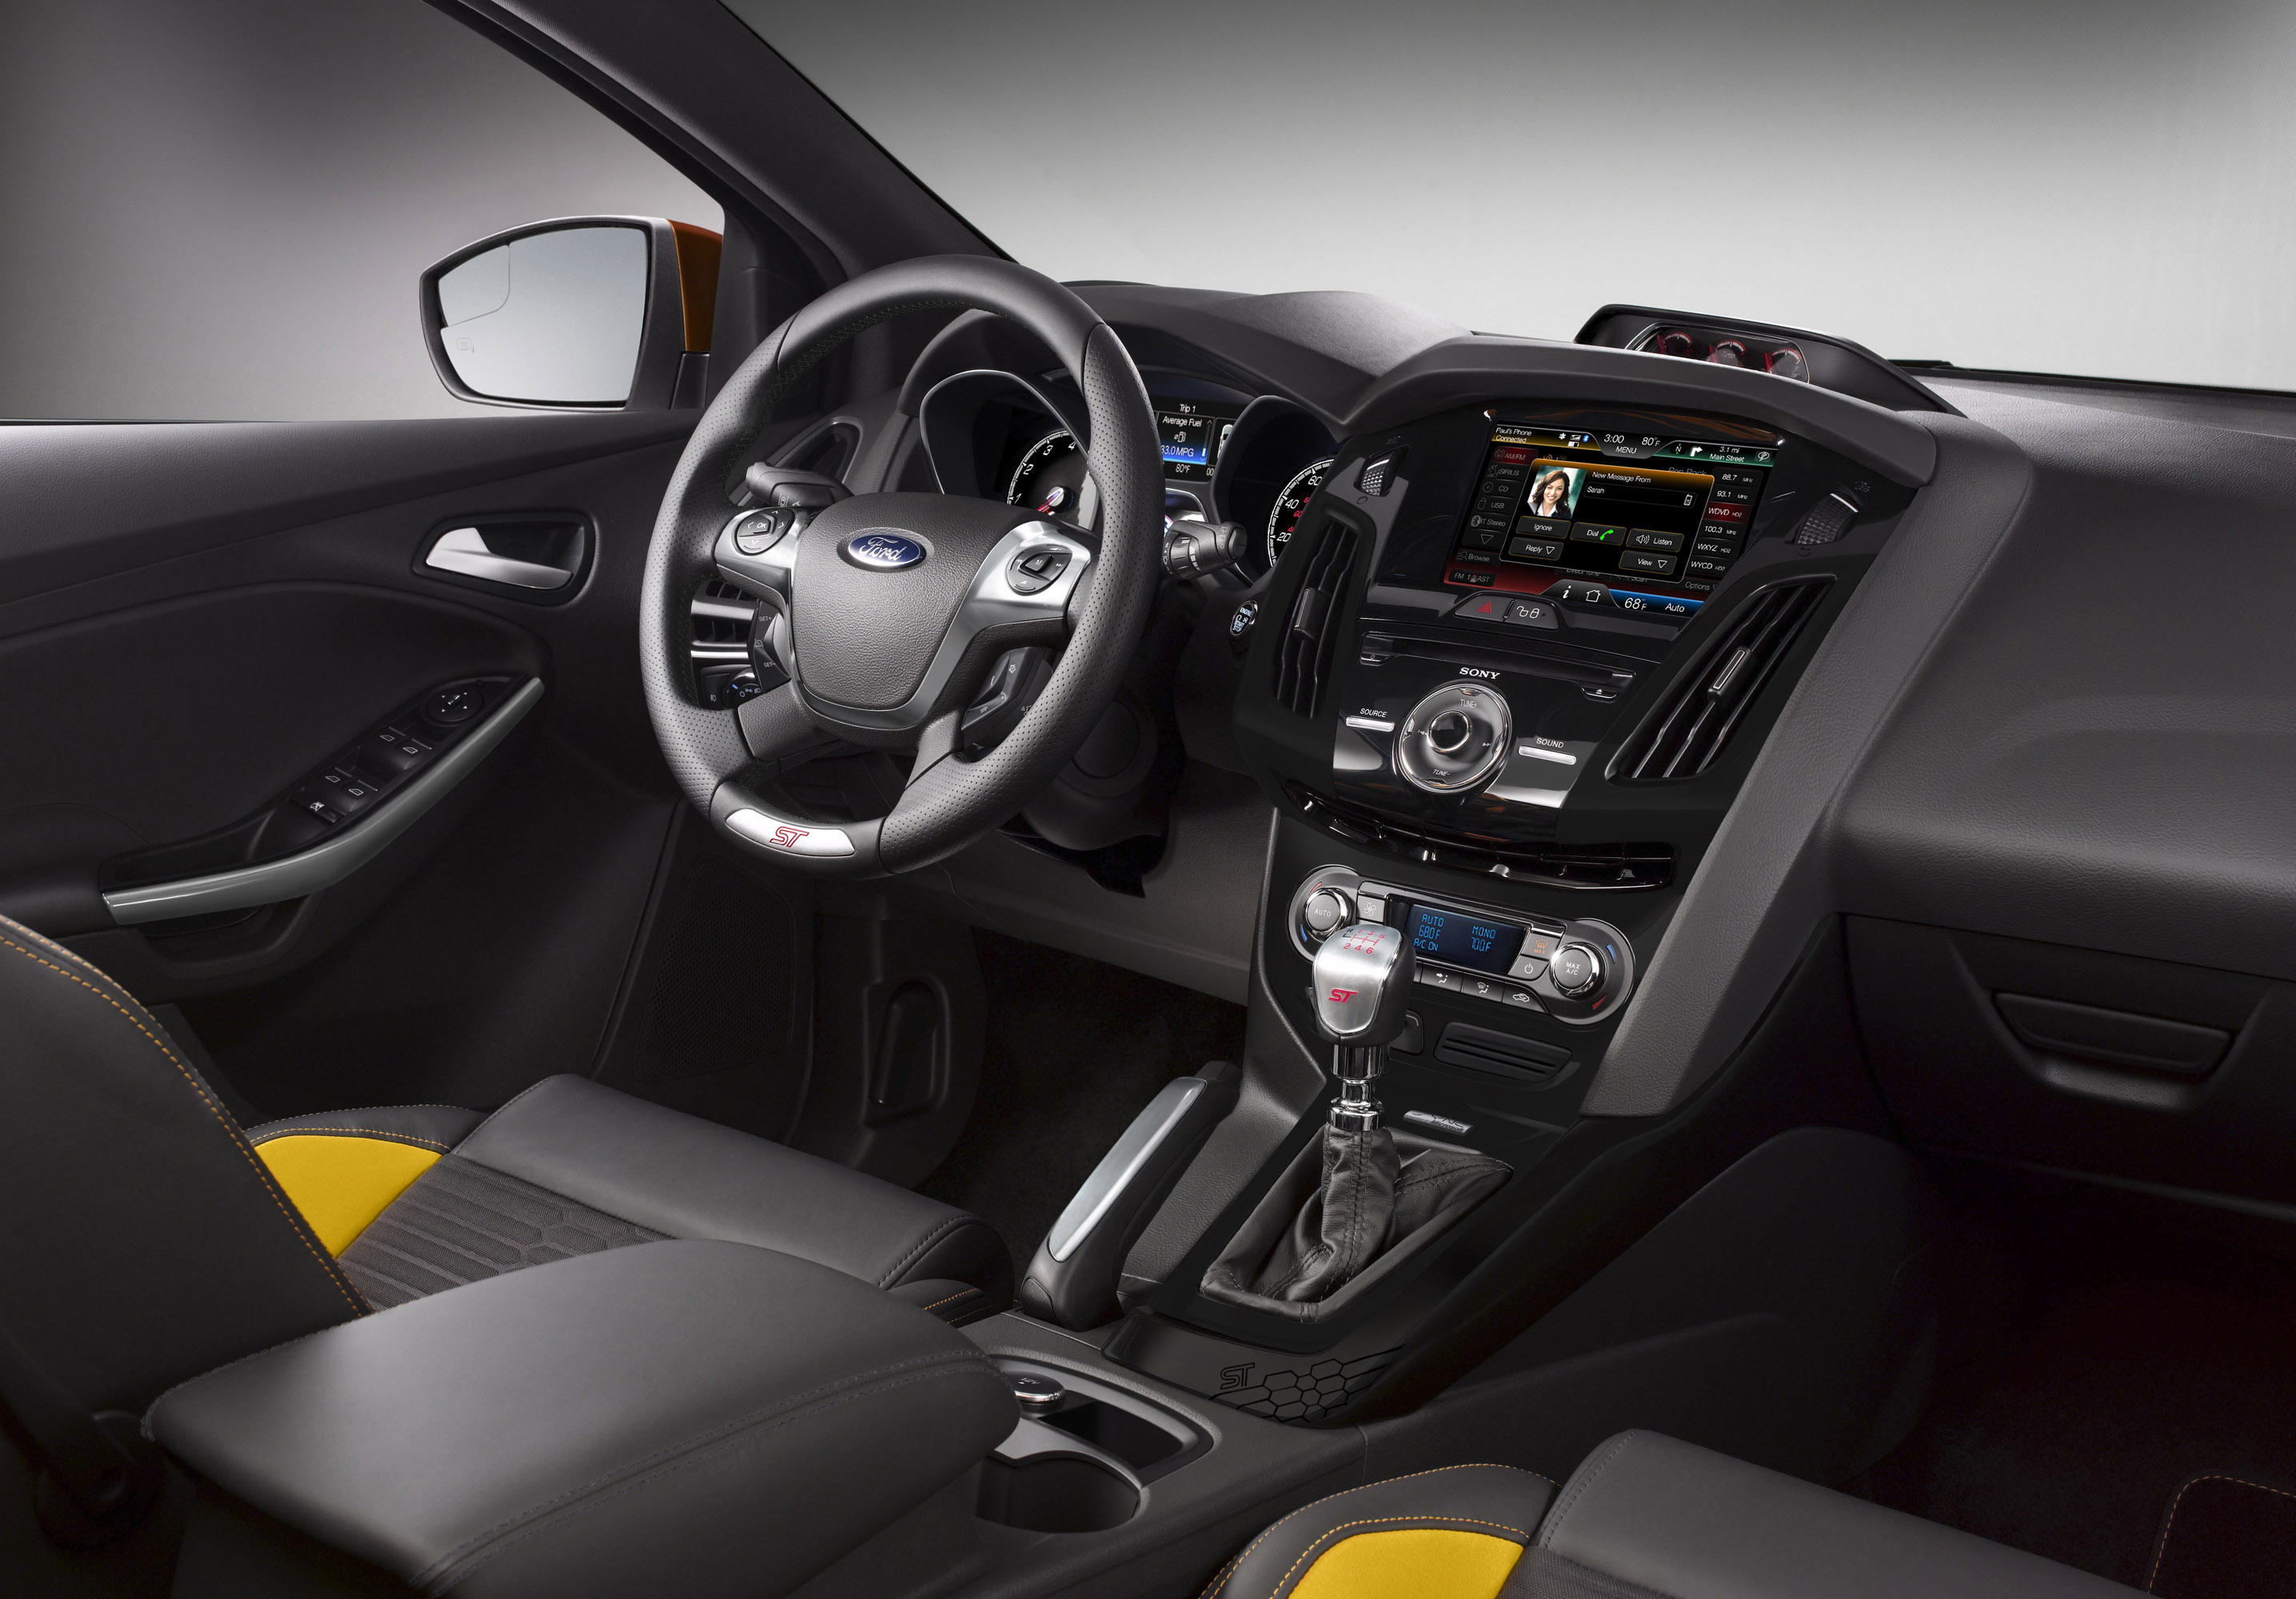 2013 Ford Focus St With Announced Price 2014 Seats